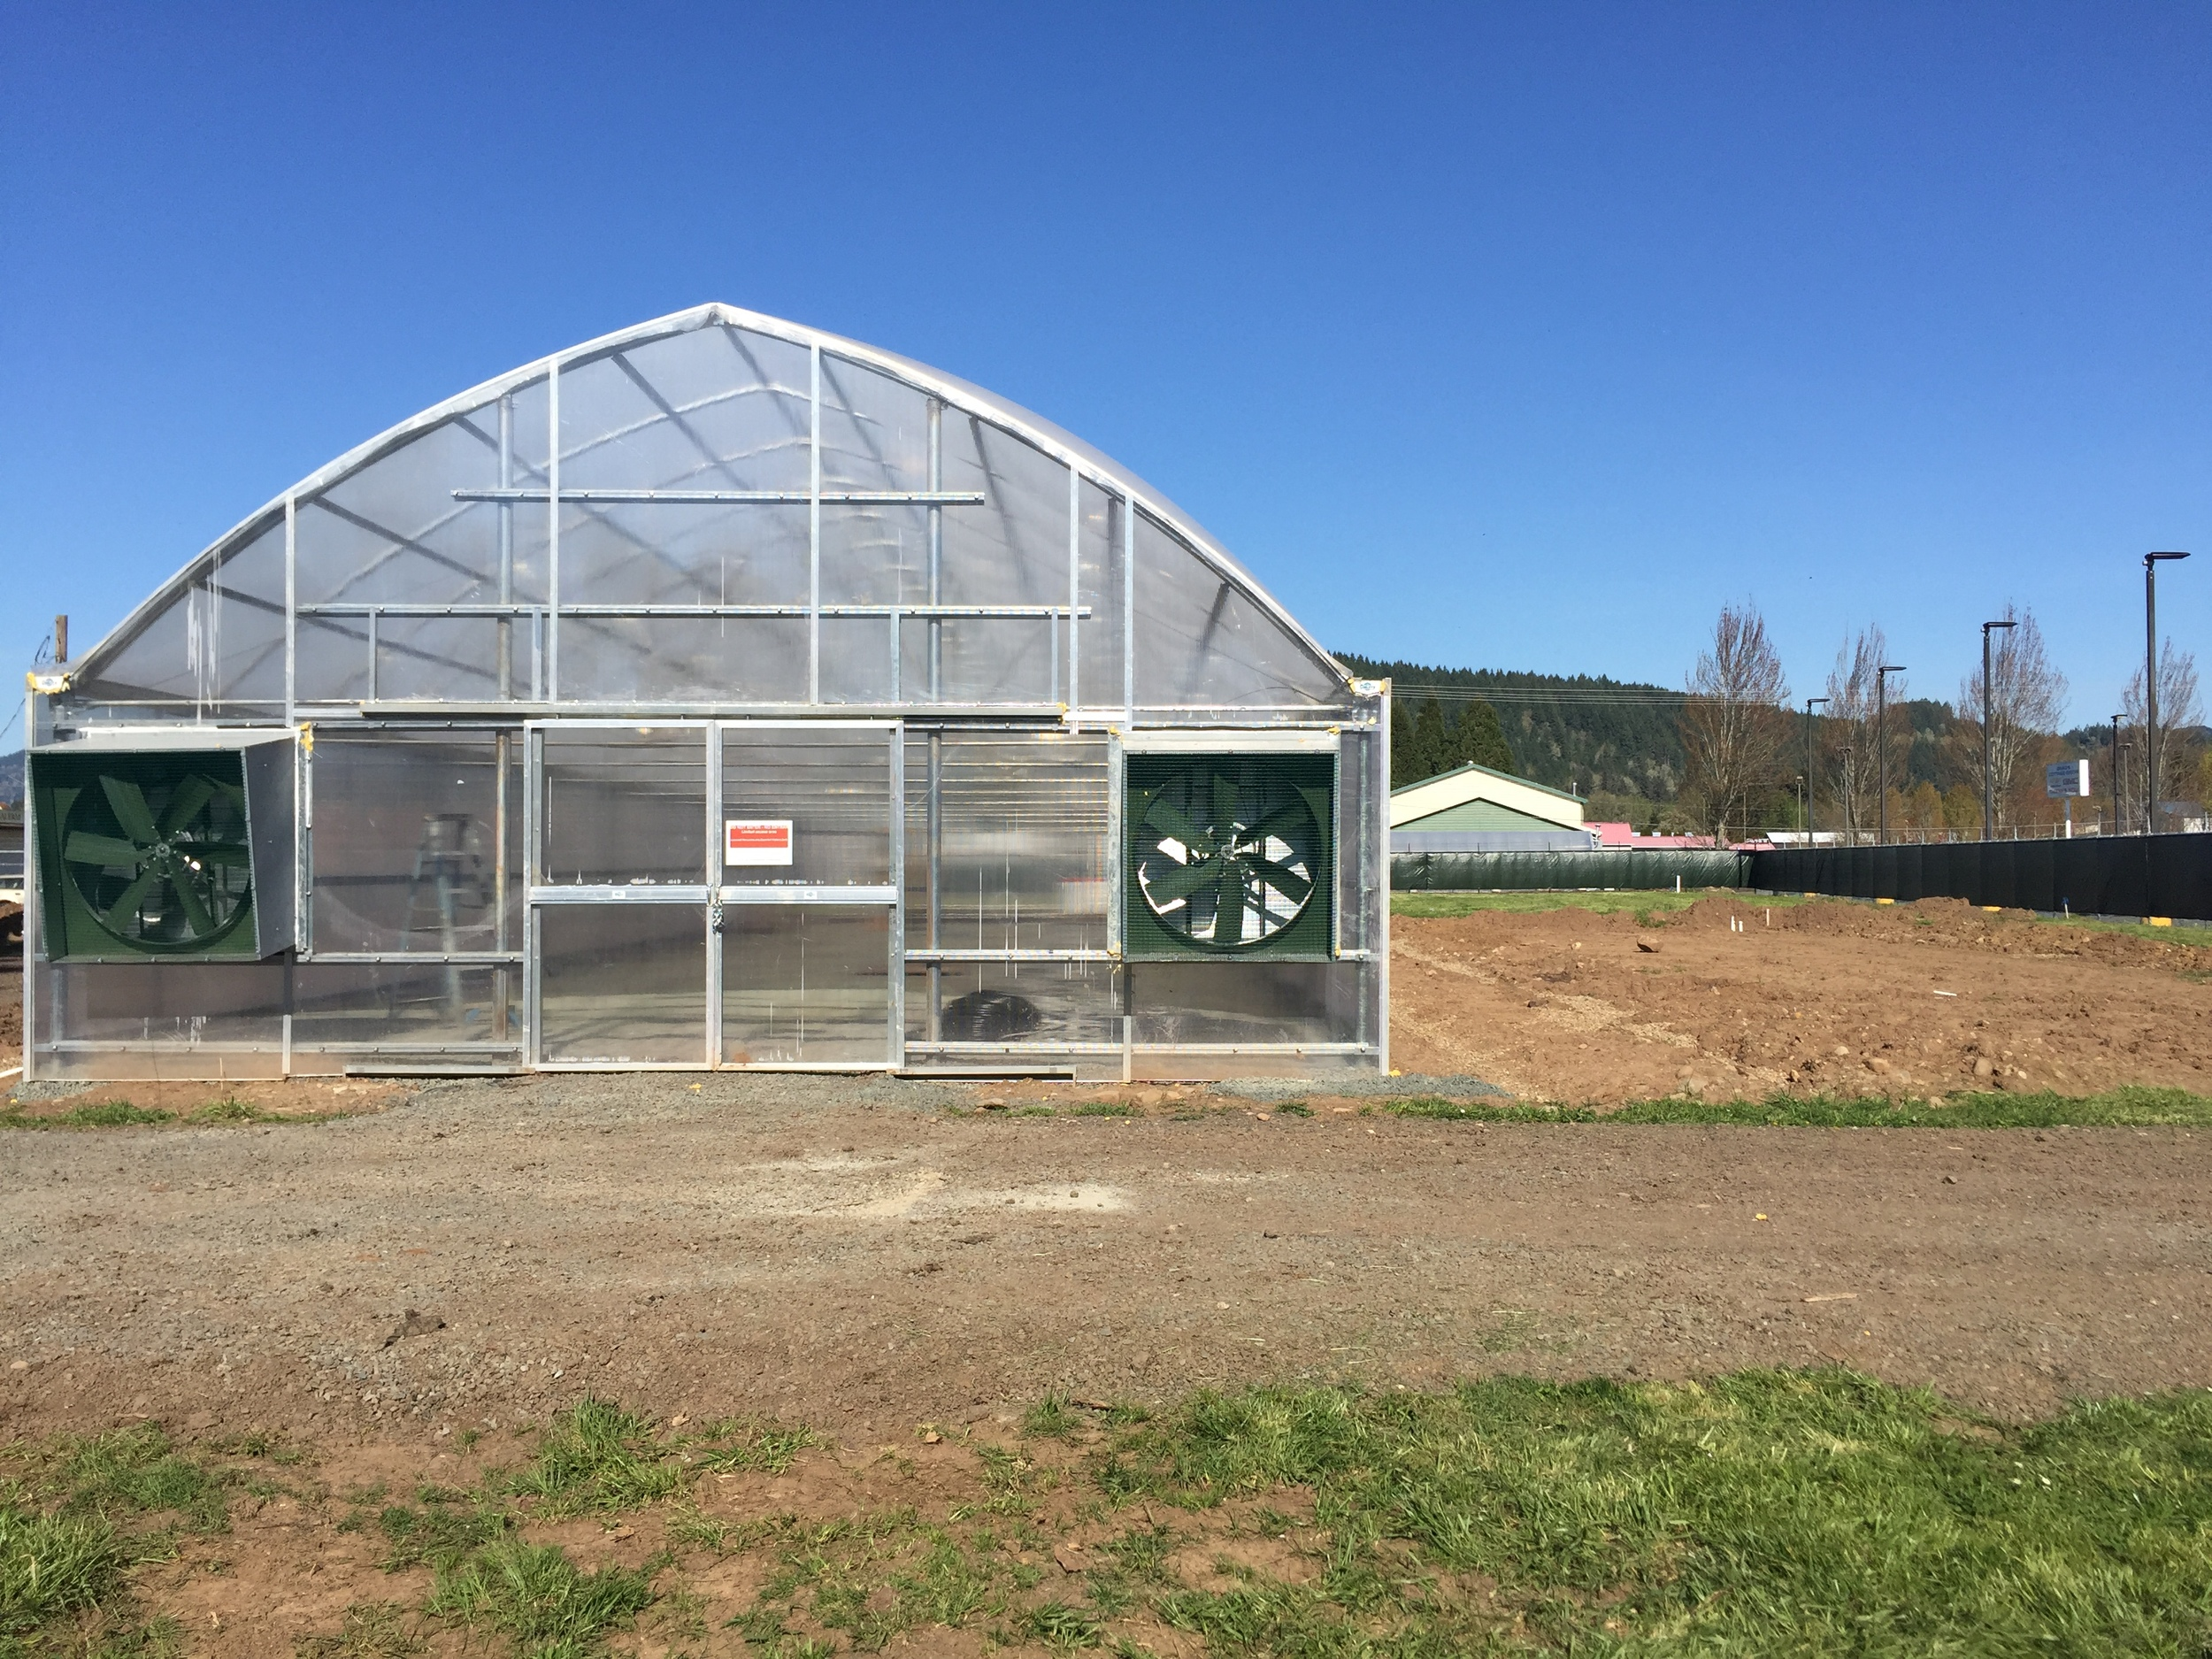 For those of you who might be curious, the greenhouse is a Conley 3600 - heated by gas and cooled by a high-pressure fog system.